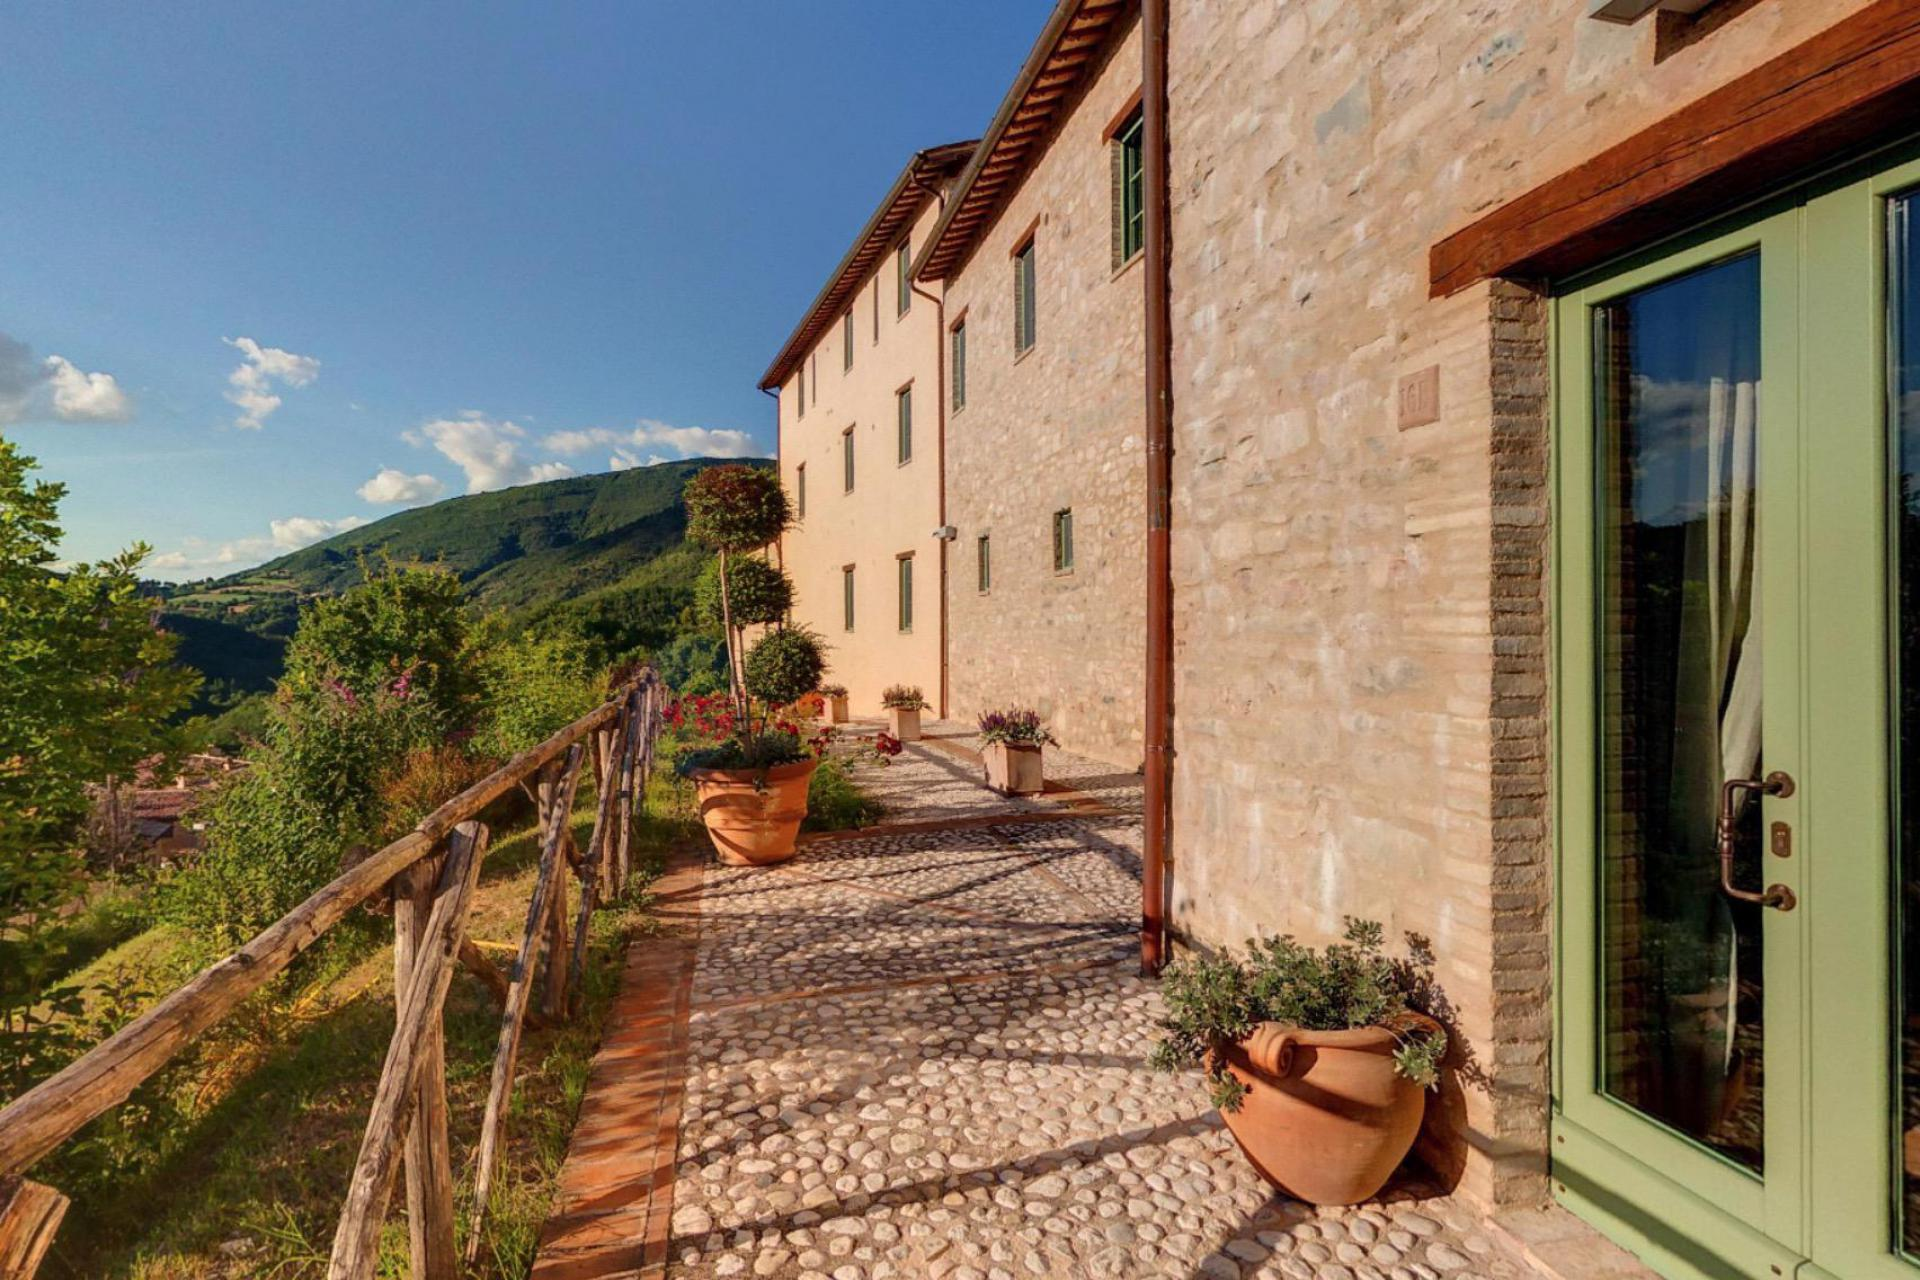 Agriturismo Umbria Family-friendly resort in the heart of Umbria